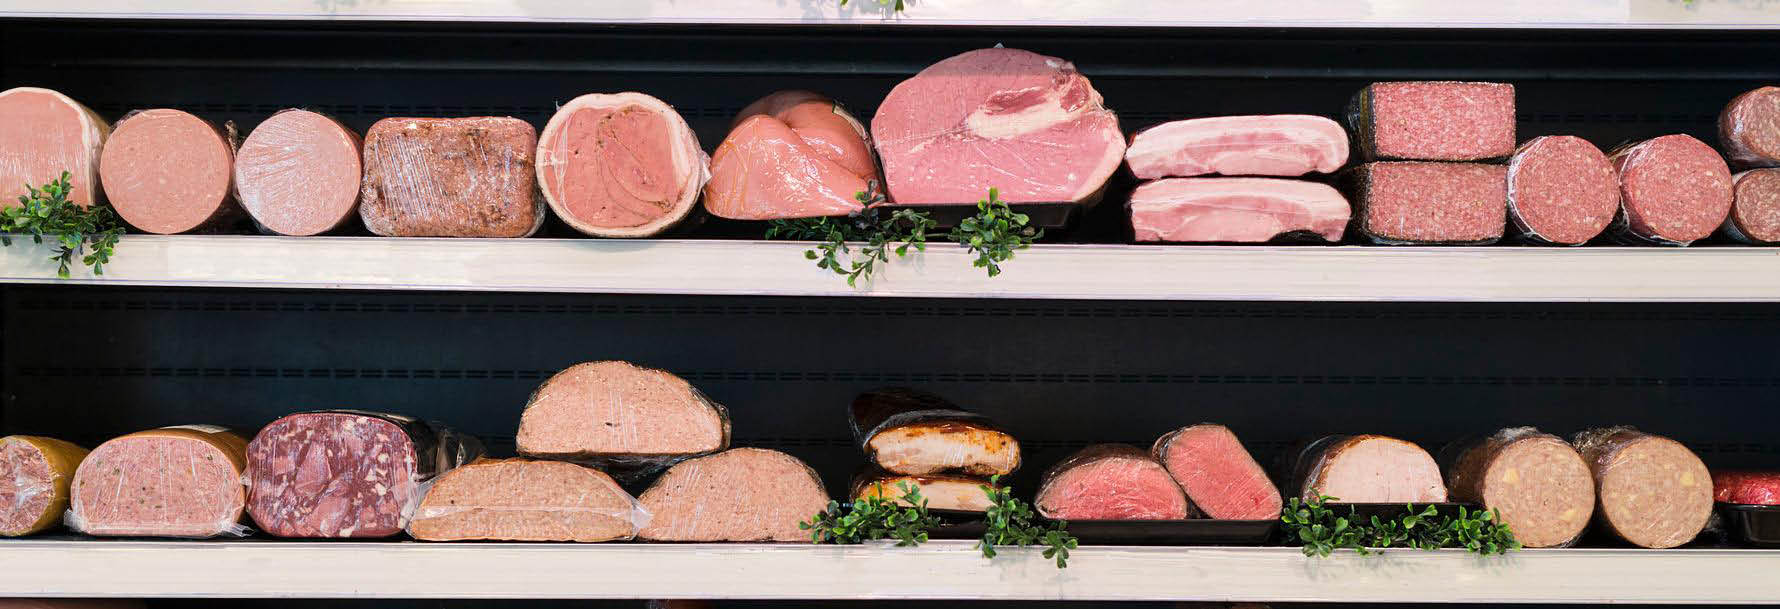 Save on grocery save on groceries local meat market local butcher